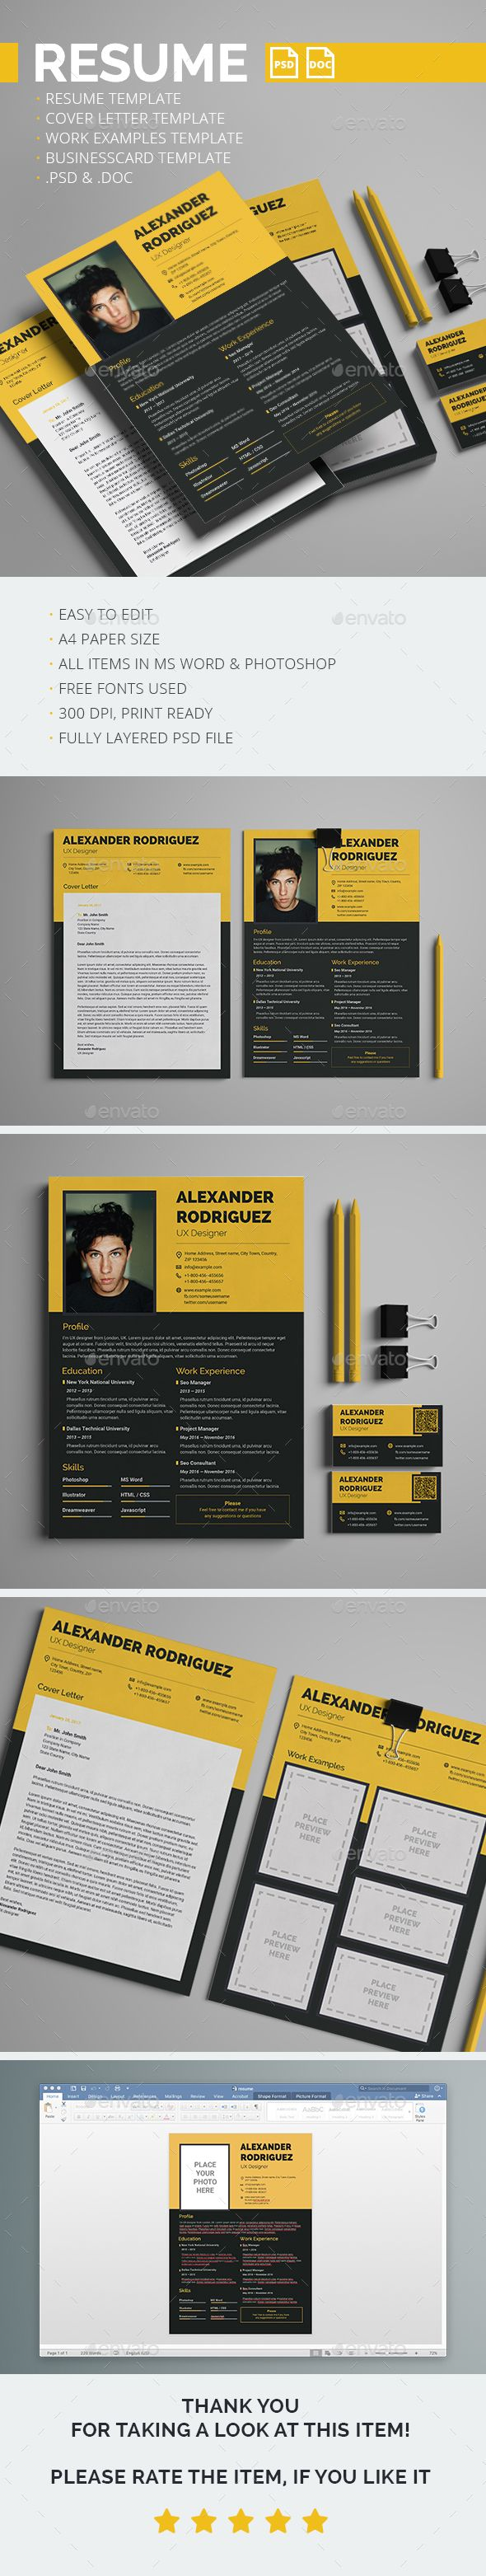 Resume, Cover letter, Work examples & Business card templates